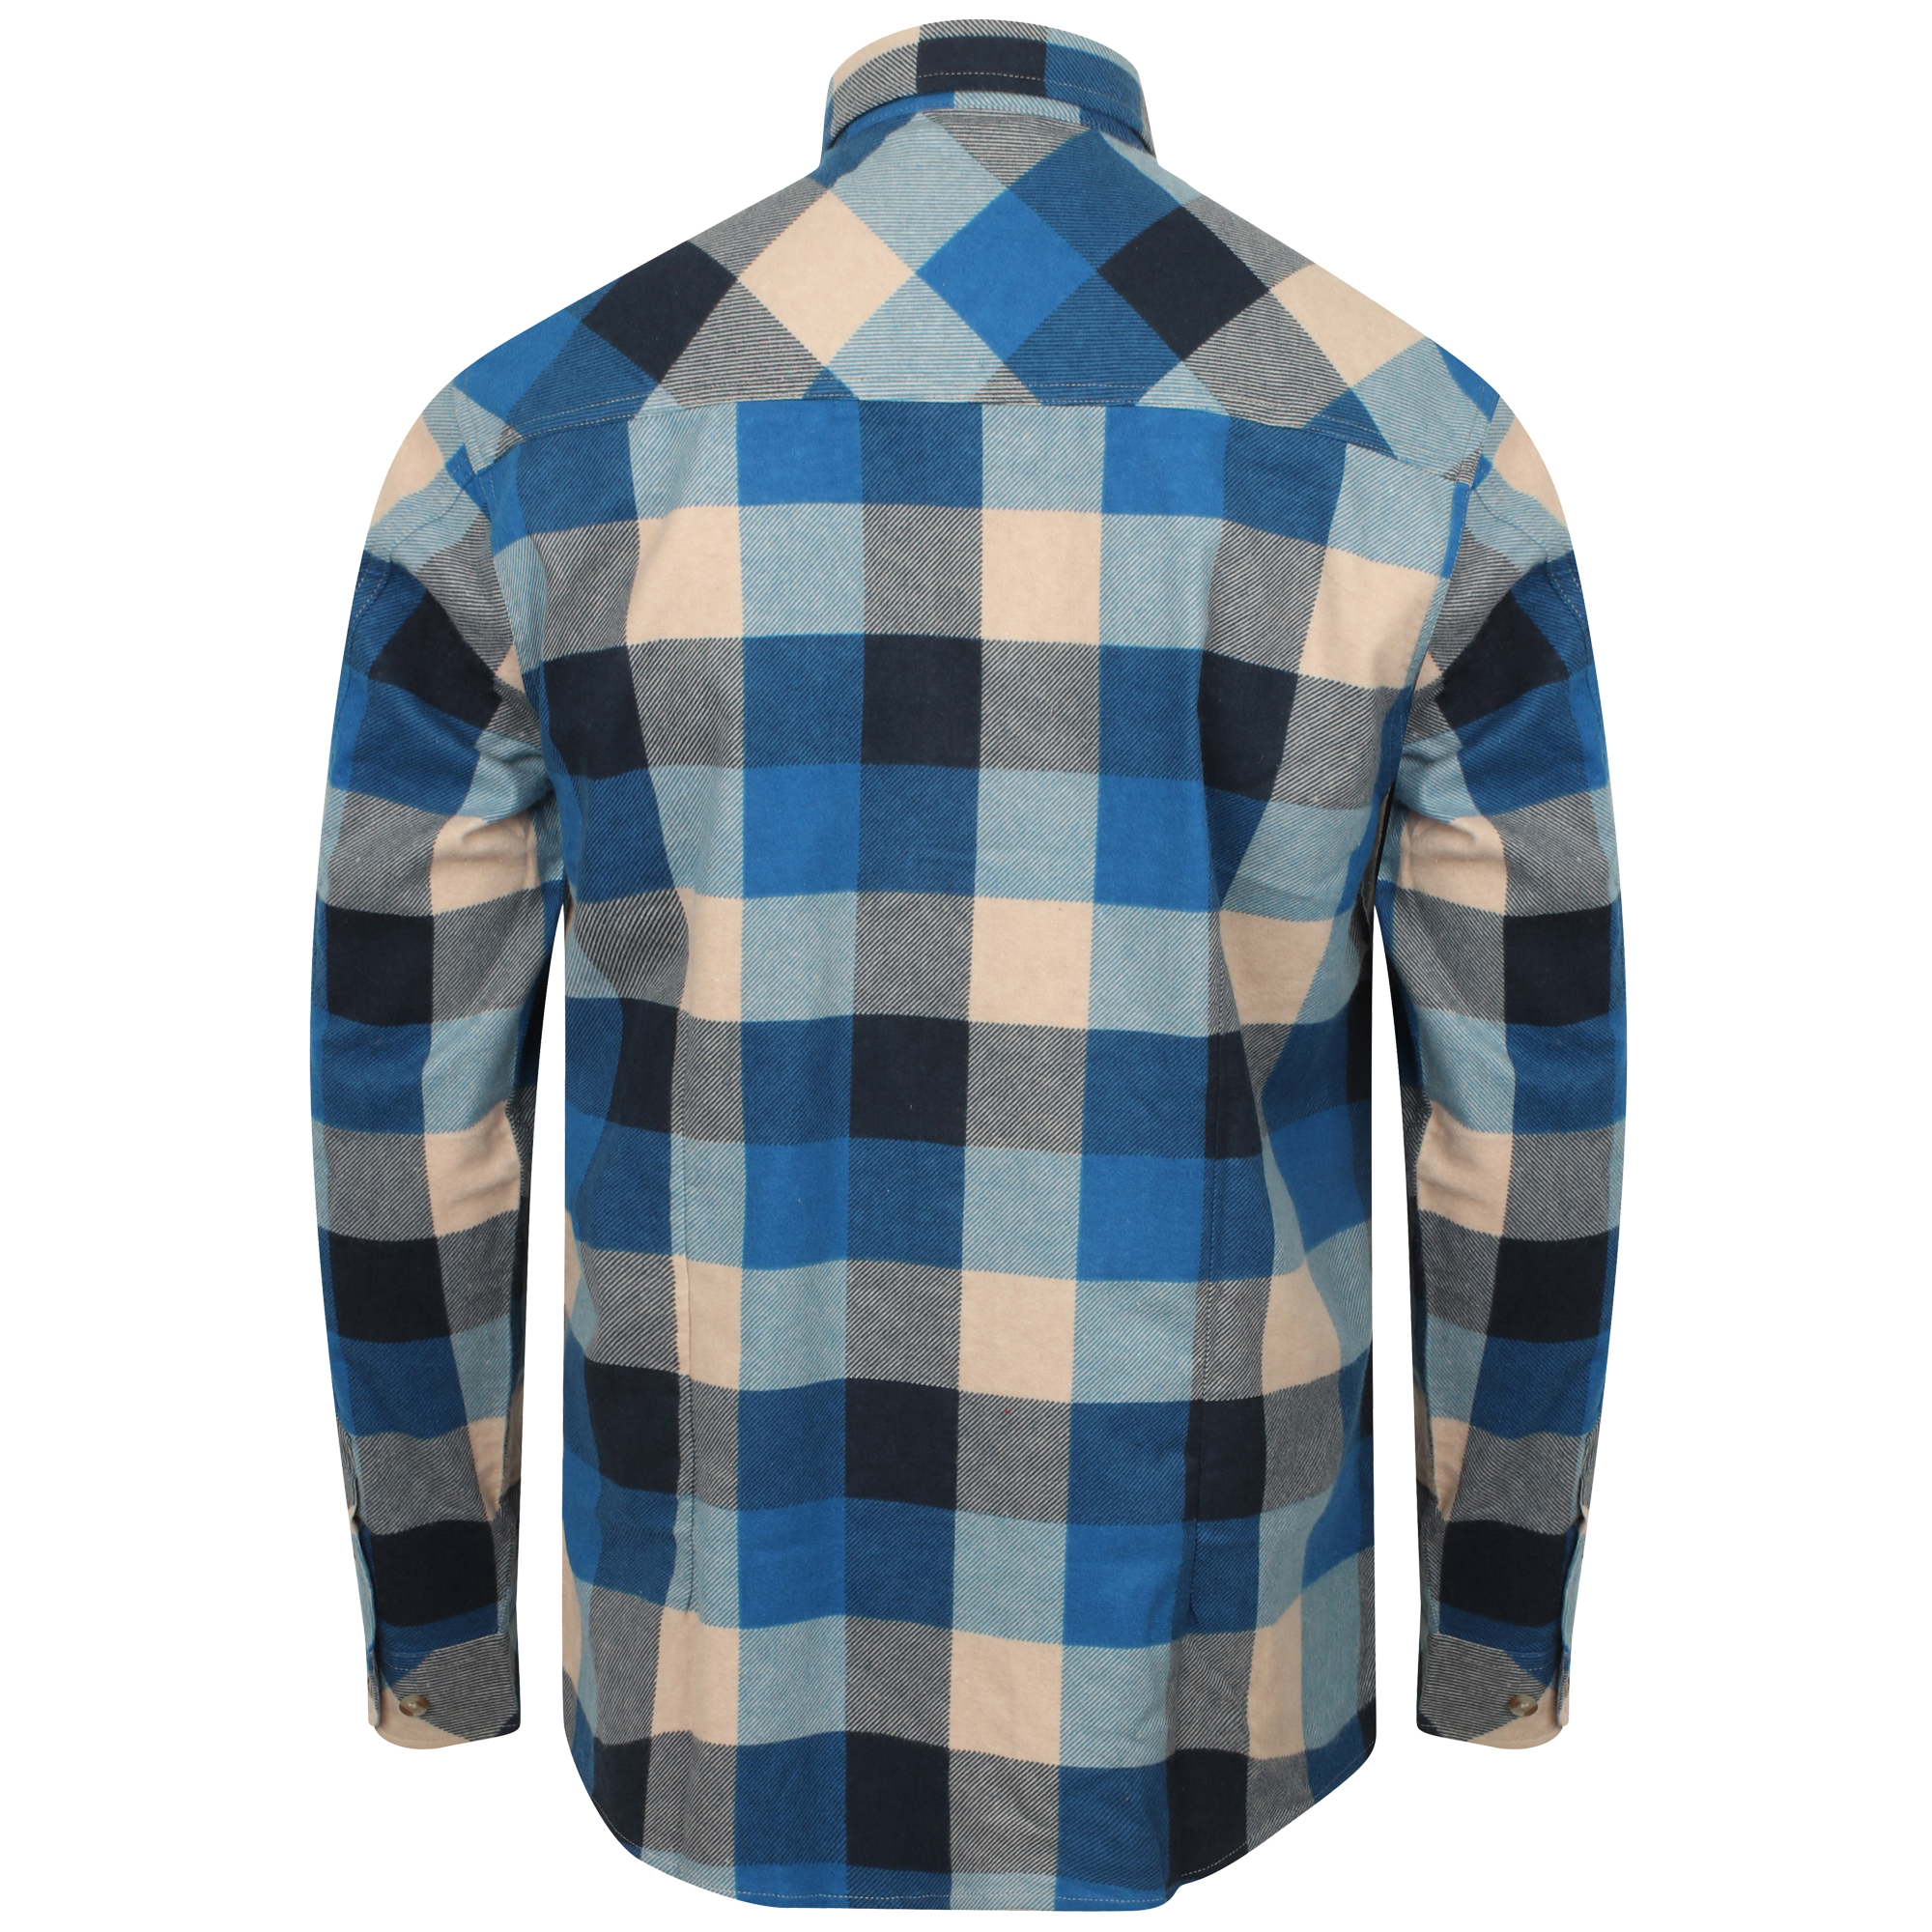 Mens Flannel Shirt Tokyo Laundry Cotton Tartan Checked Long Sleeves Collared New